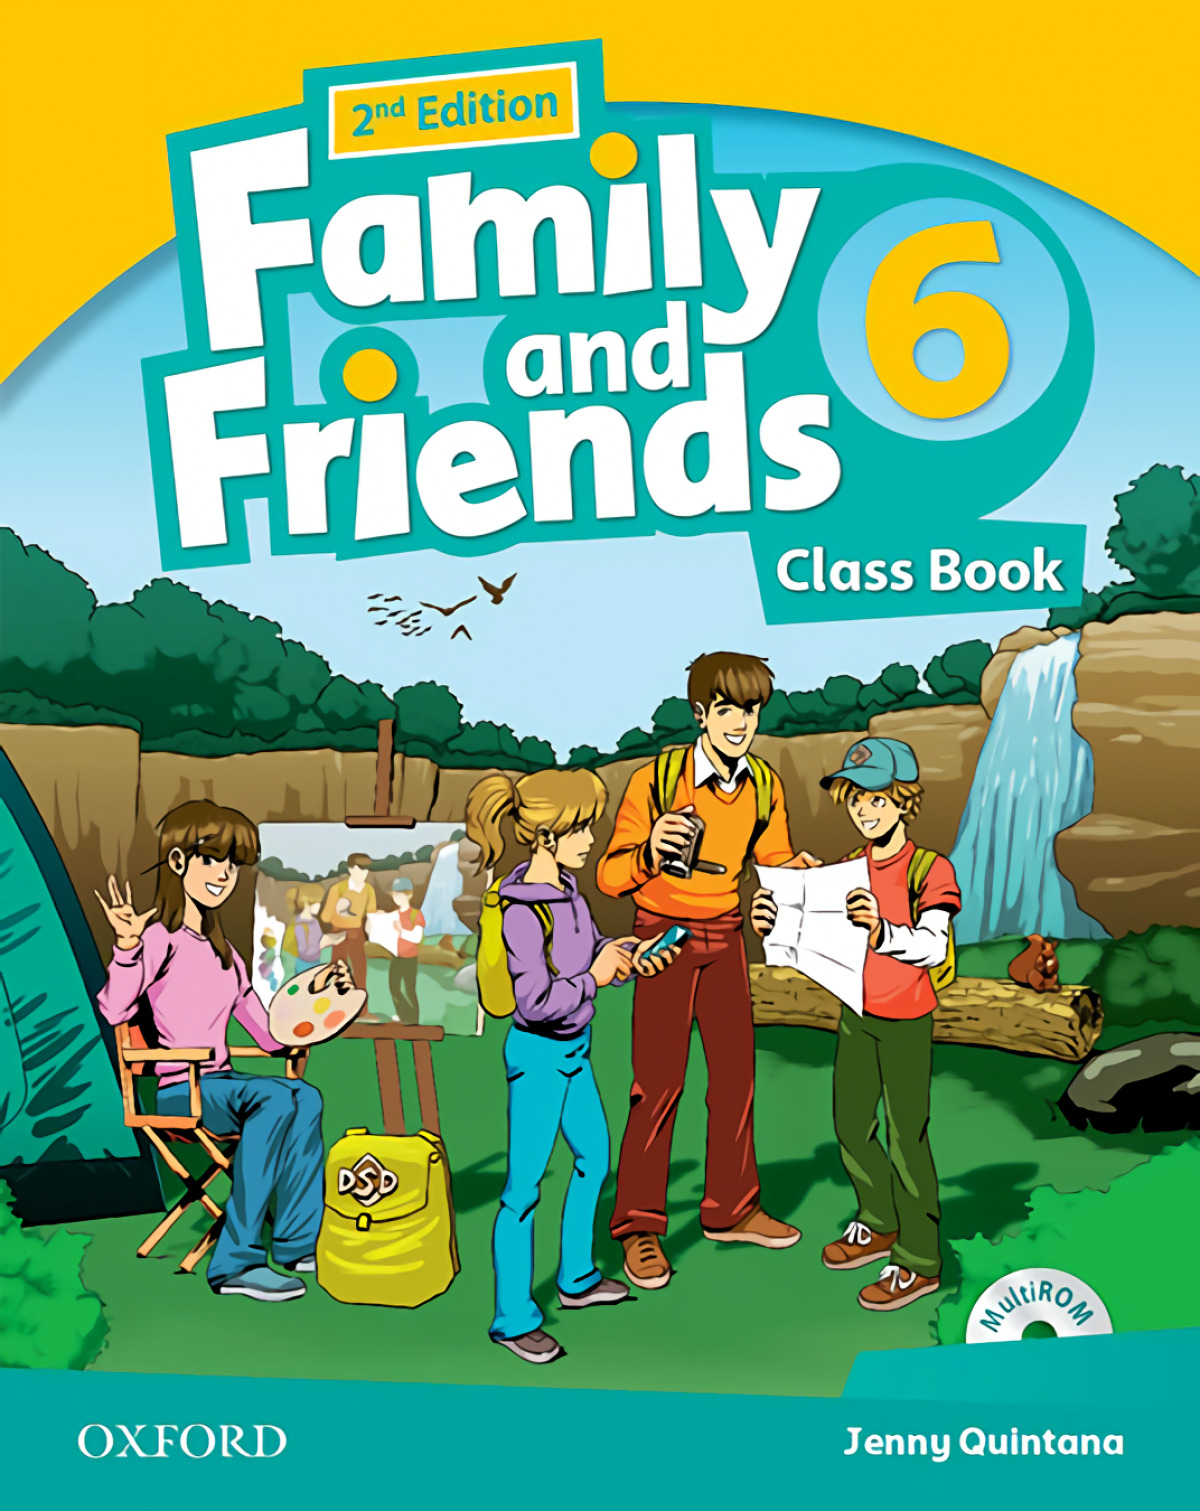 Family and Friends 2nd Edition 6. Class Book Pack. Revised Edition